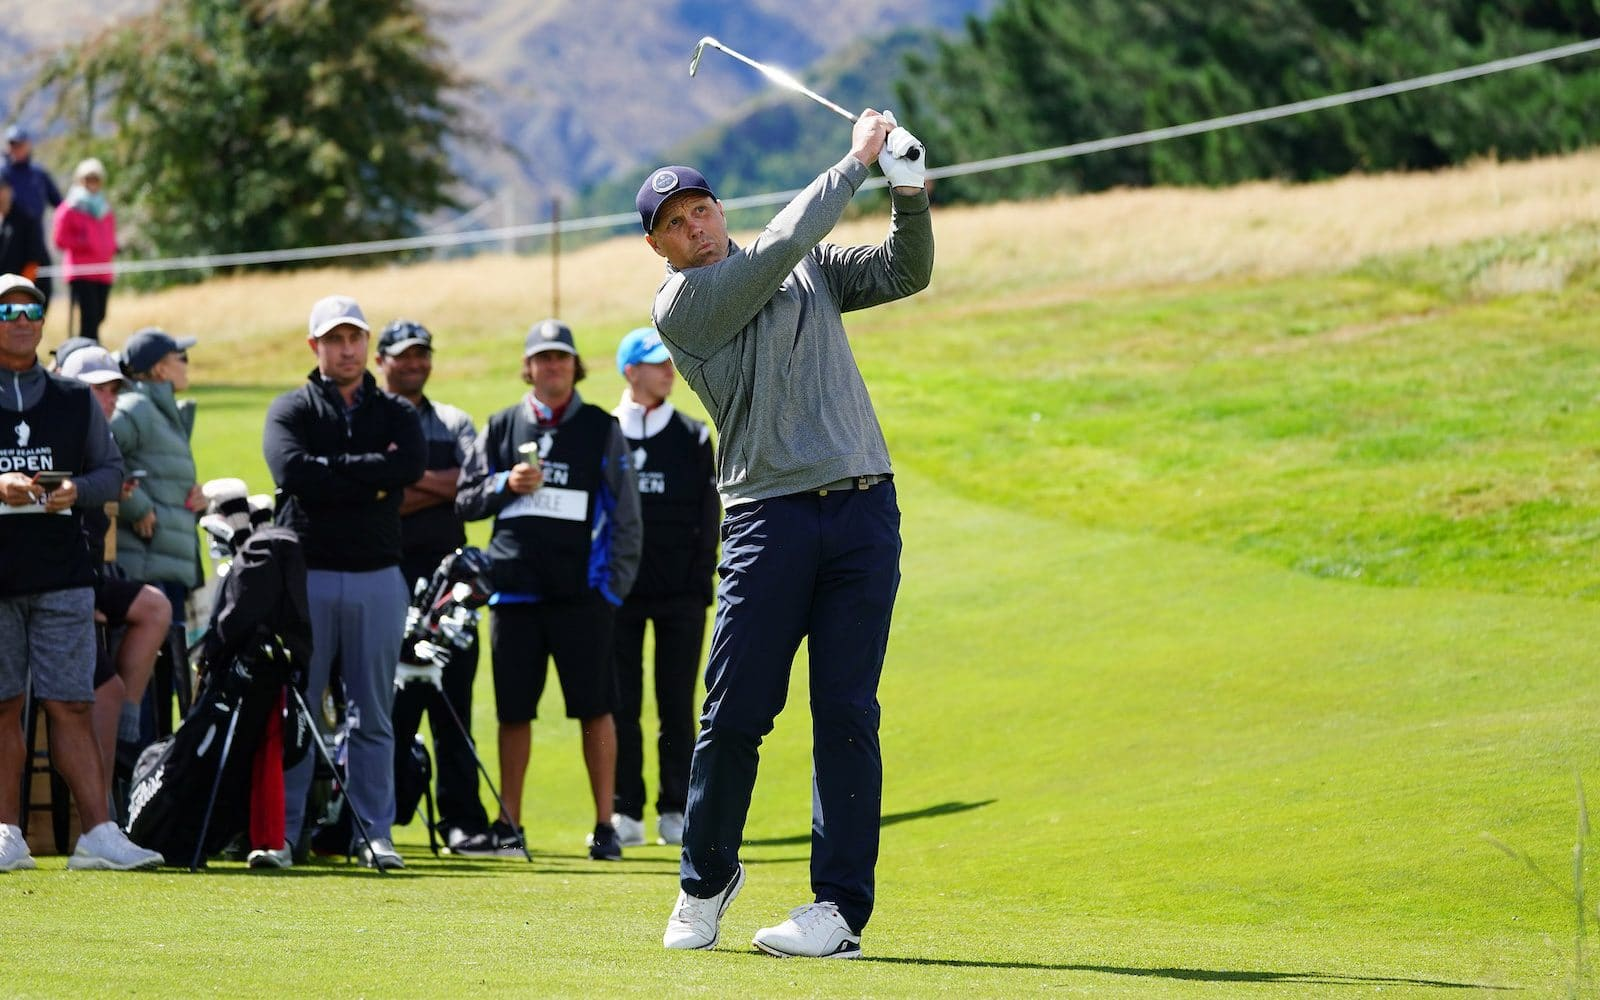 100th NZ Open - Par 3 Champions Day